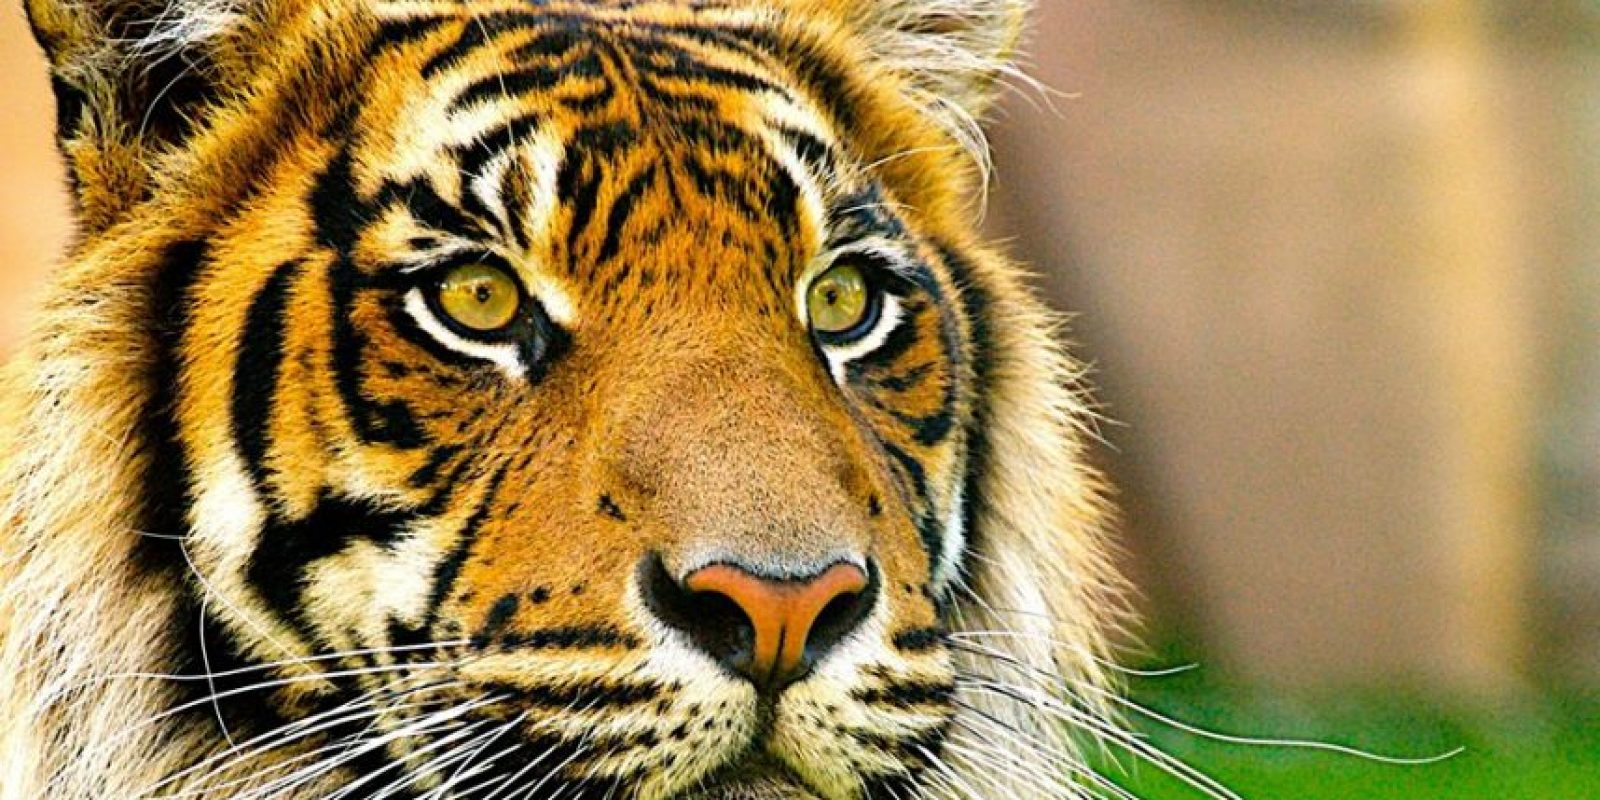 ¿Por qué una selfie podría arruinar la vida de un animal salvaje como un tigre? Foto: Facebook/World Animal Protection